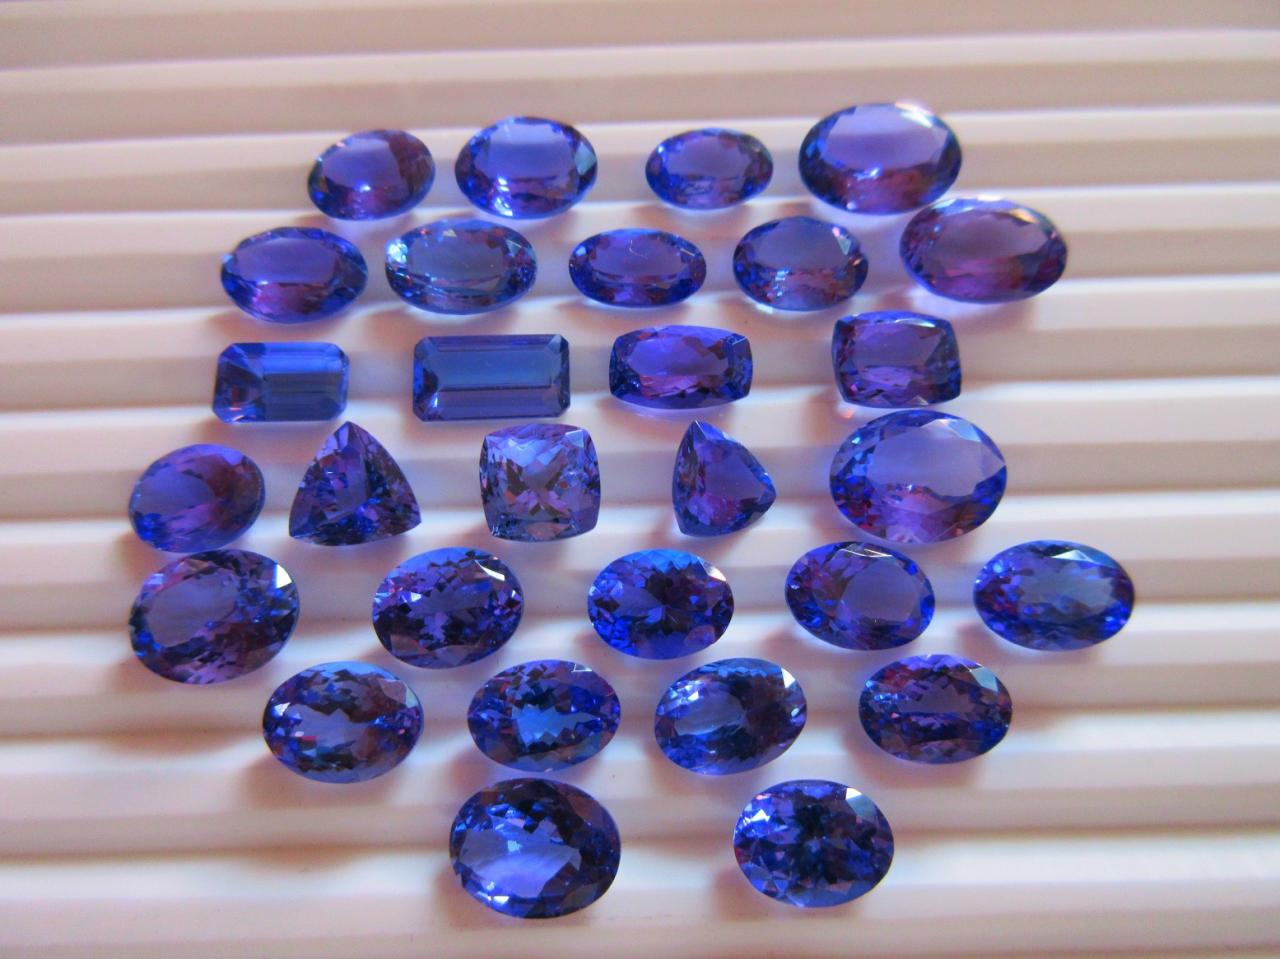 Indian natural fancy color diamond jewellery manufacturer of tanzanite gemstones nvjuhfo Choice Image